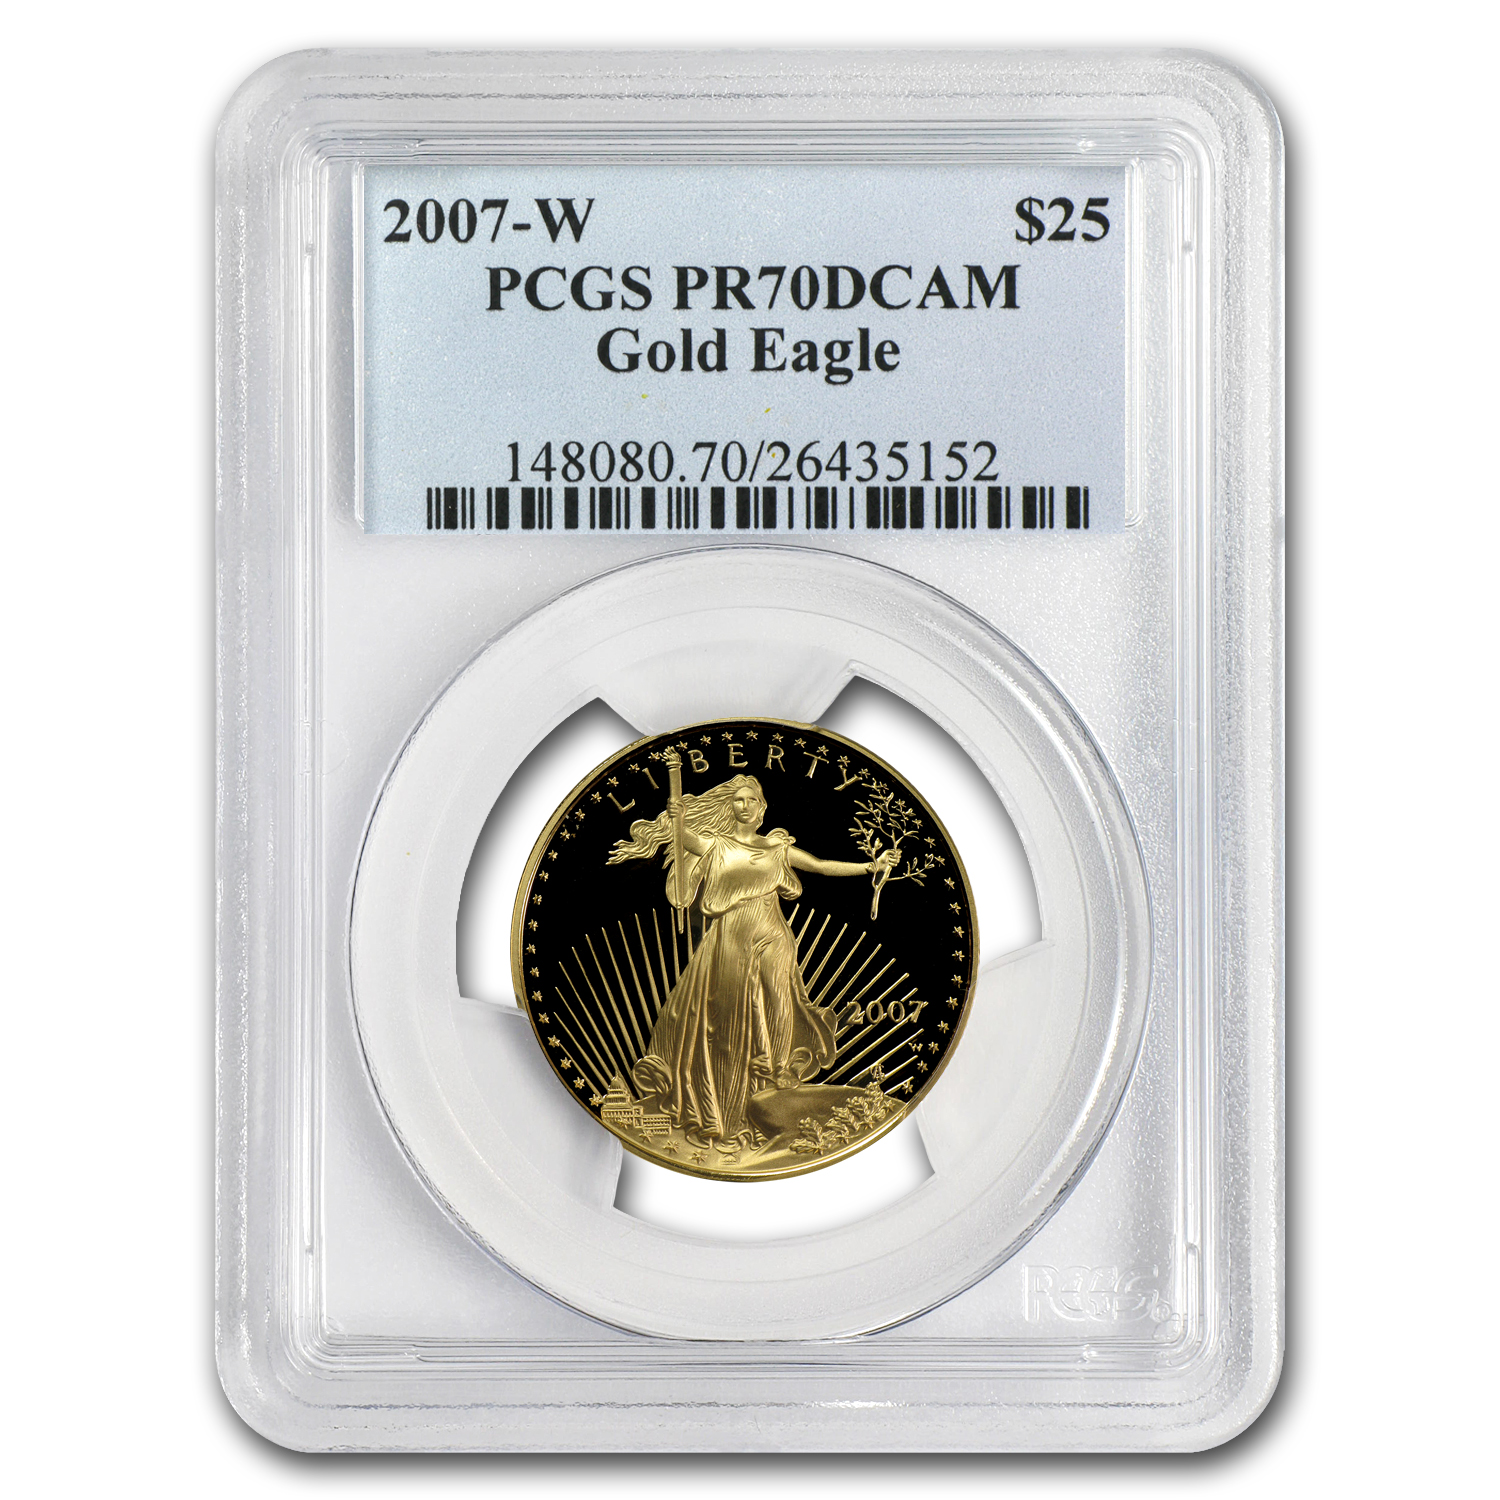 2007-W 1/2 oz Proof Gold American Eagle PR-70 PCGS